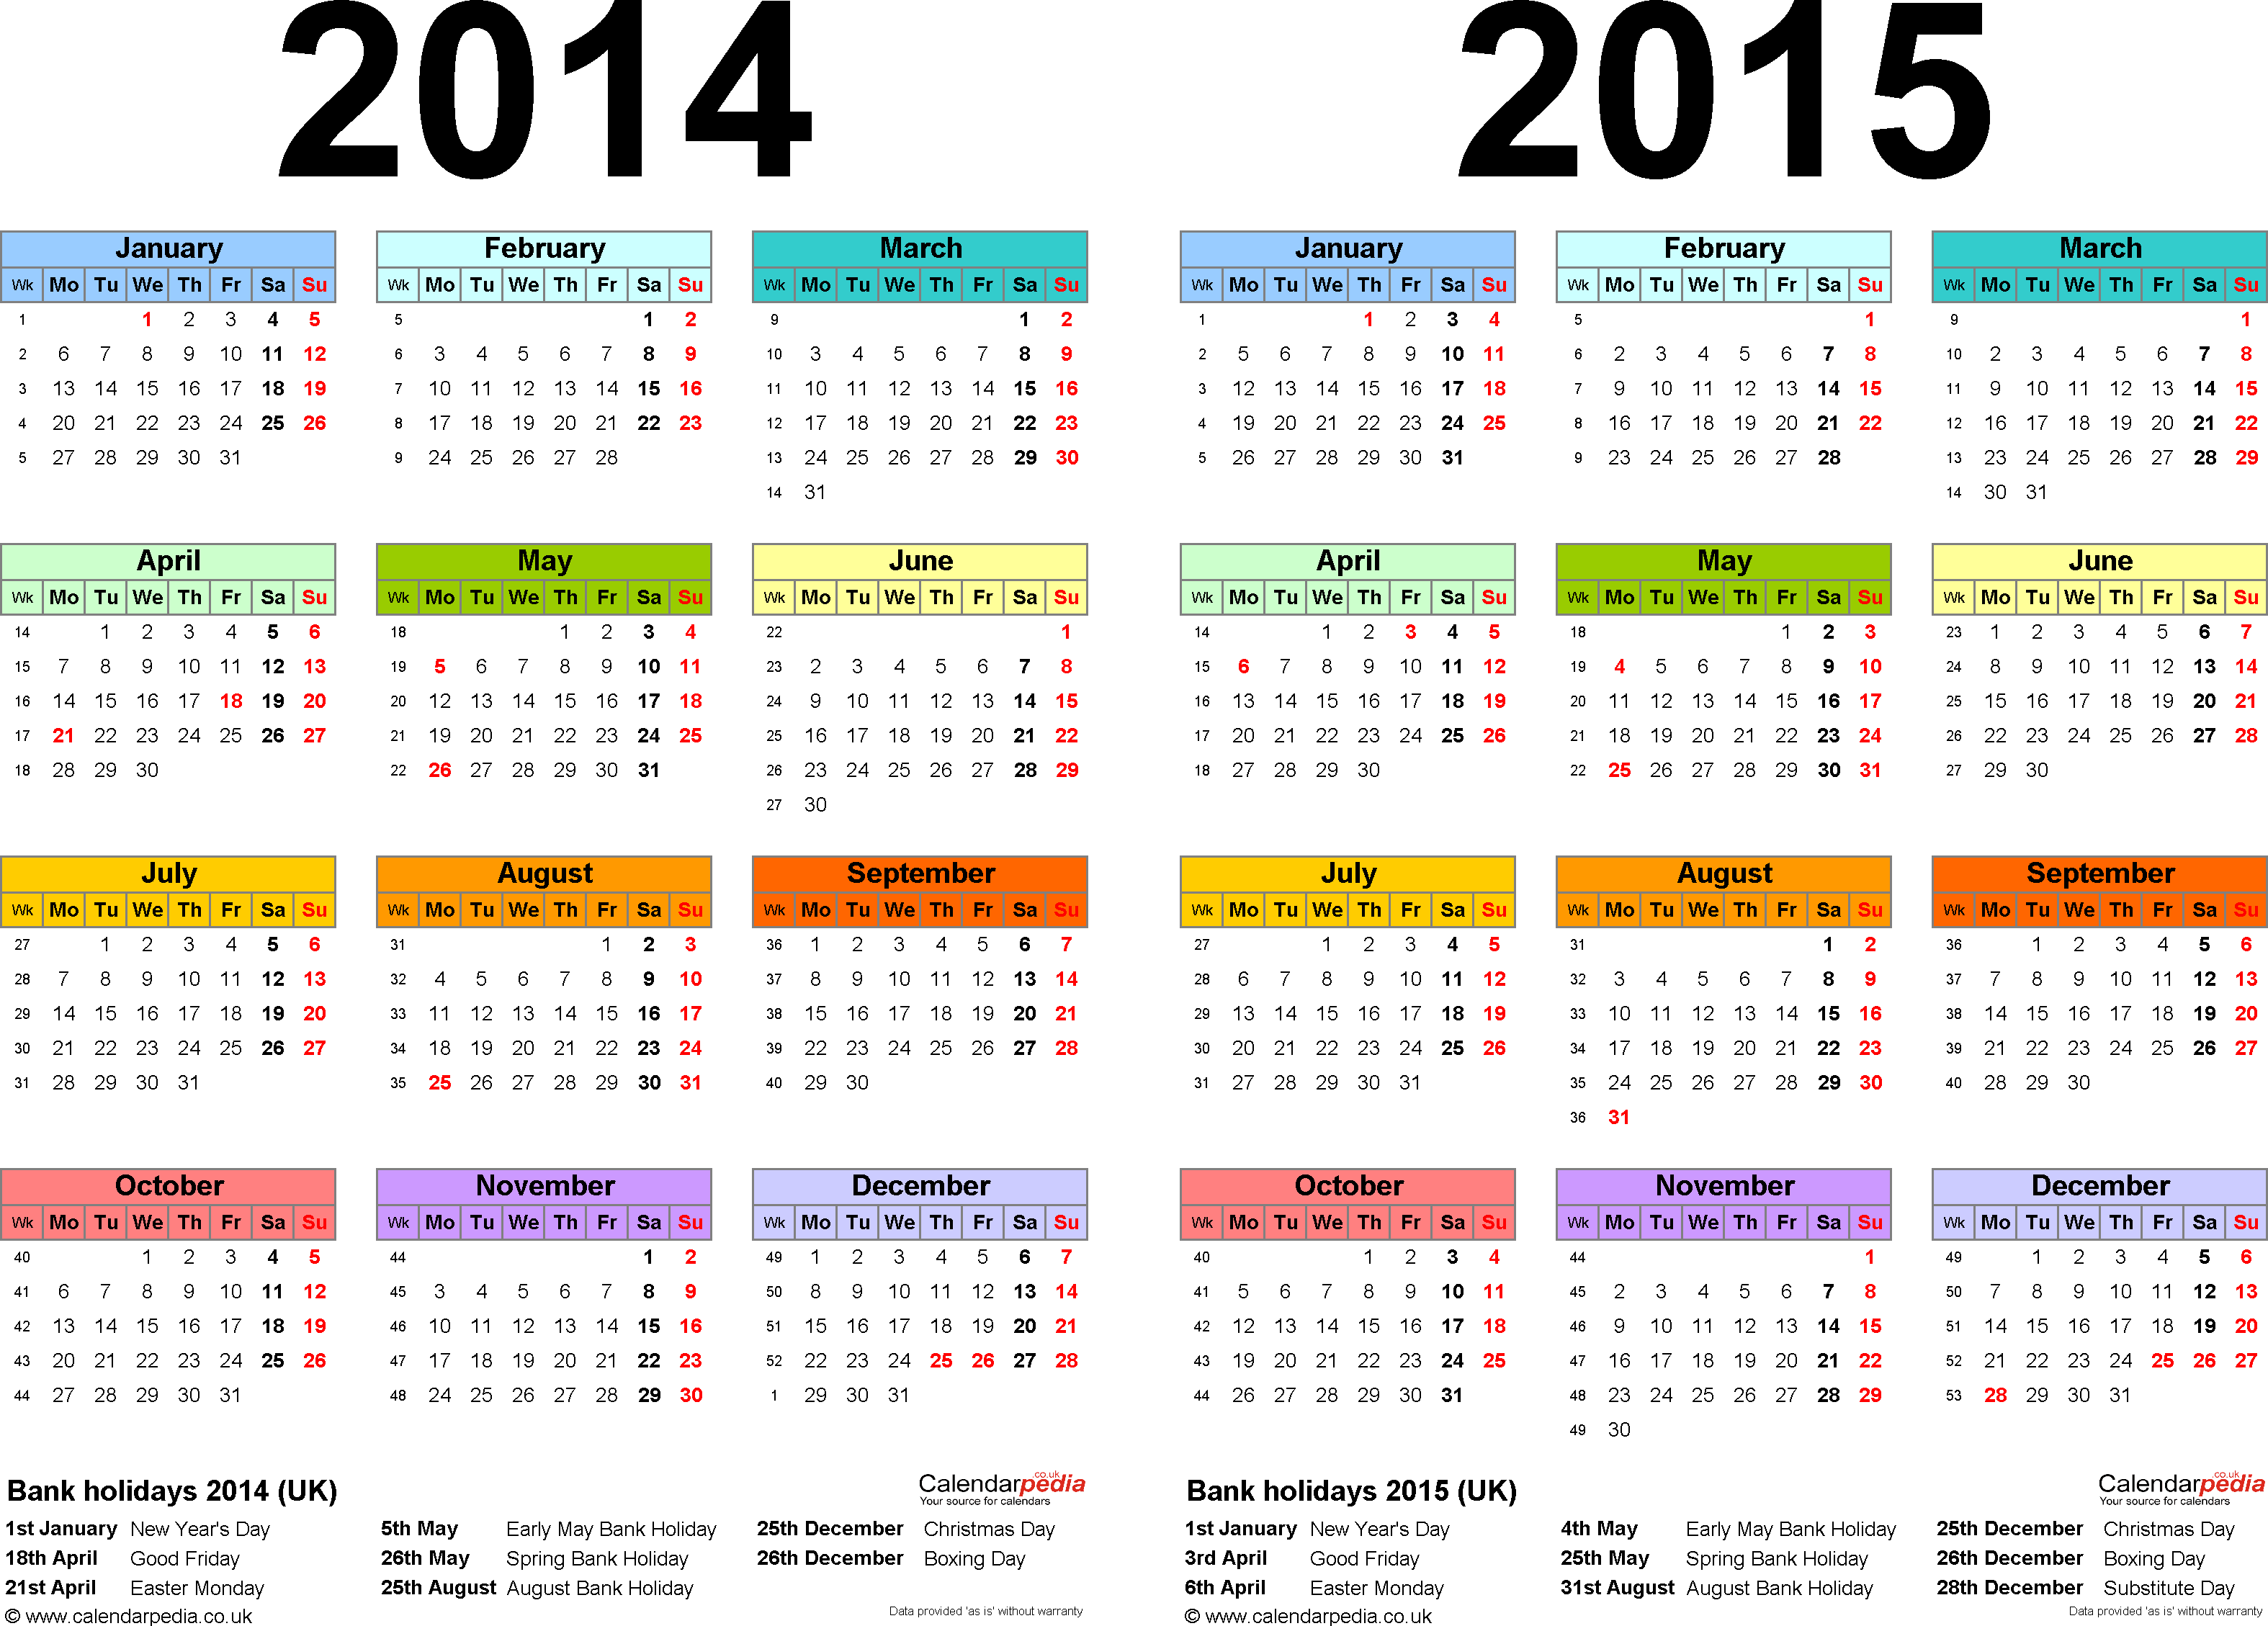 Download Template 1: Word template for two year calendar 2014/2015 multi-coloured (landscape orientation, 1 page, A4)